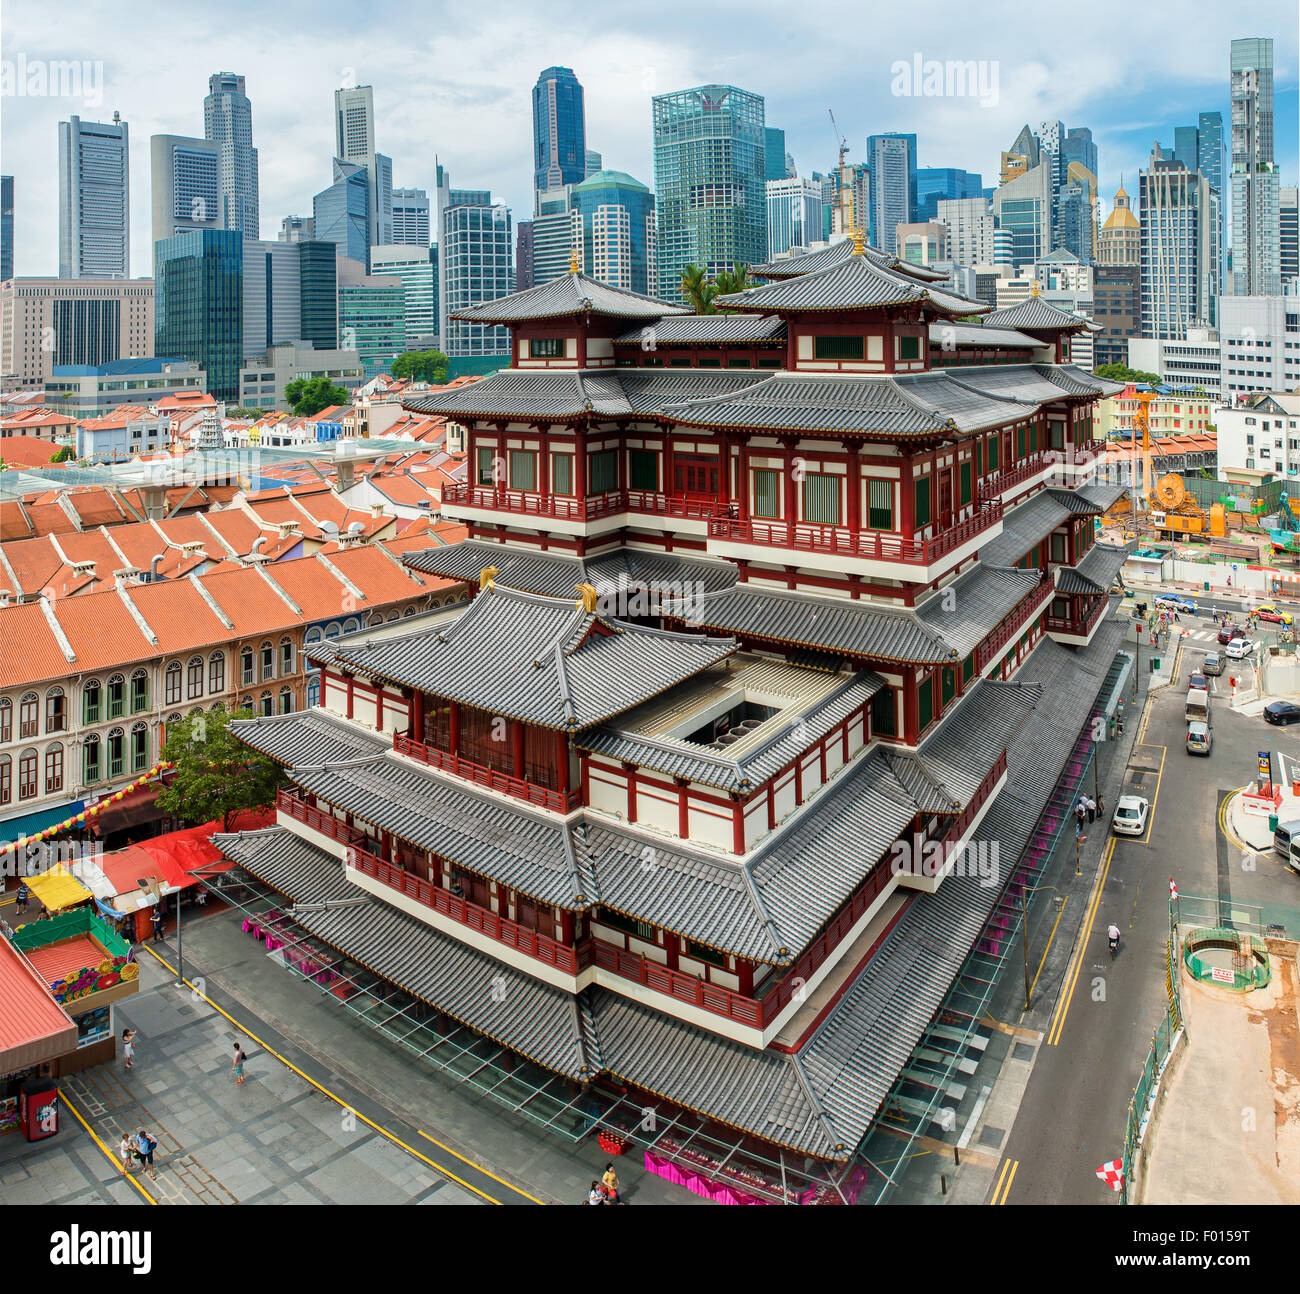 The Buddha Tooth Relic Temple in Singapore - Stock Image